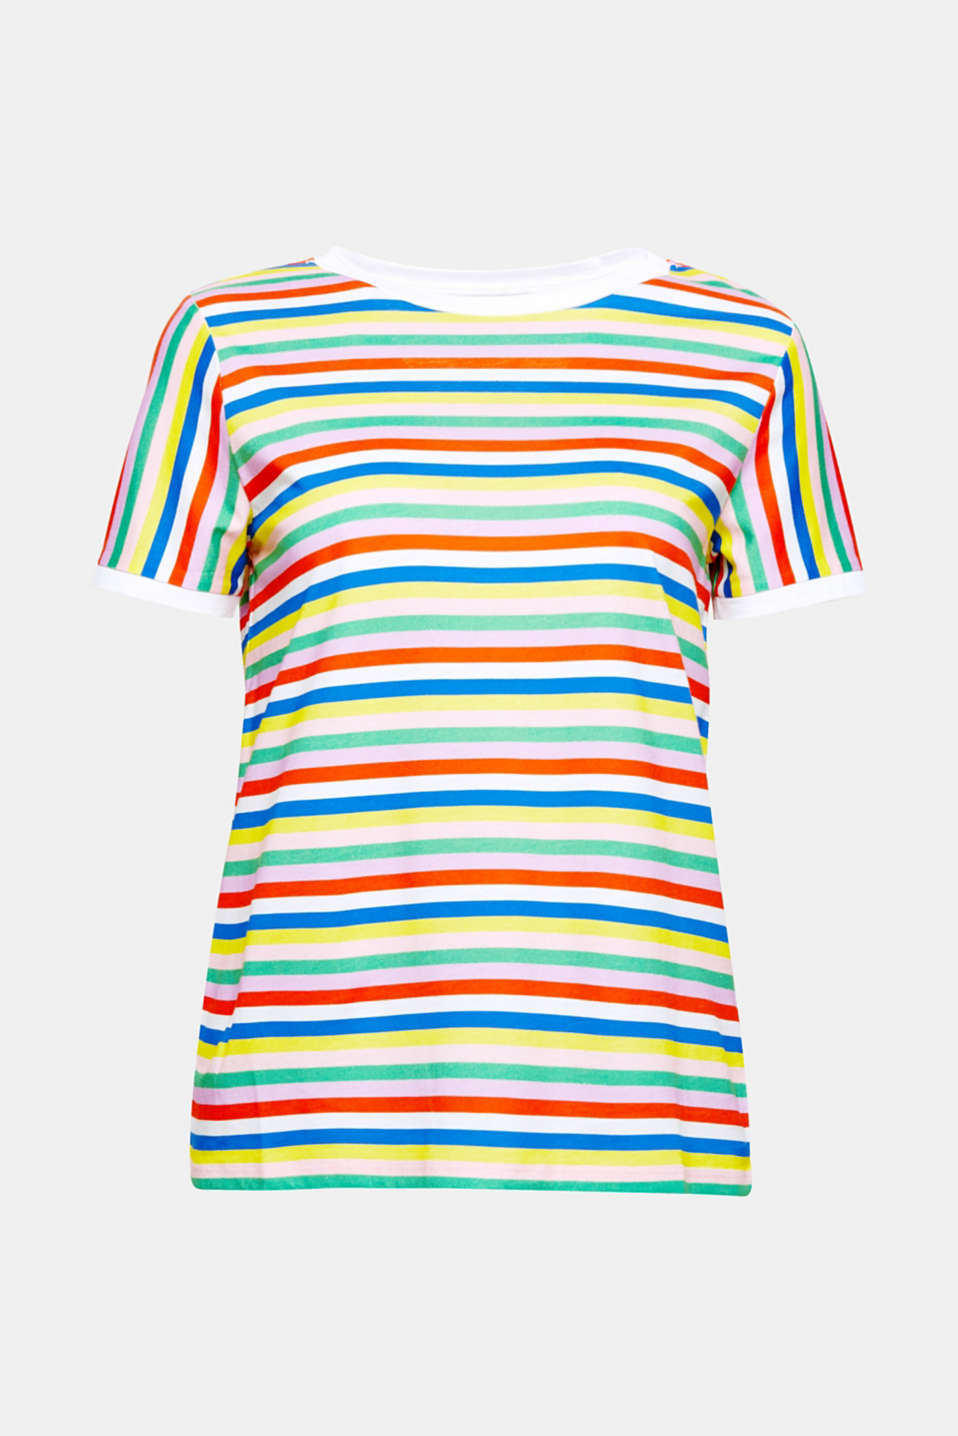 This T-shirt in a soft cotton/viscose blend with a colourful striped print and contrasting colour borders.